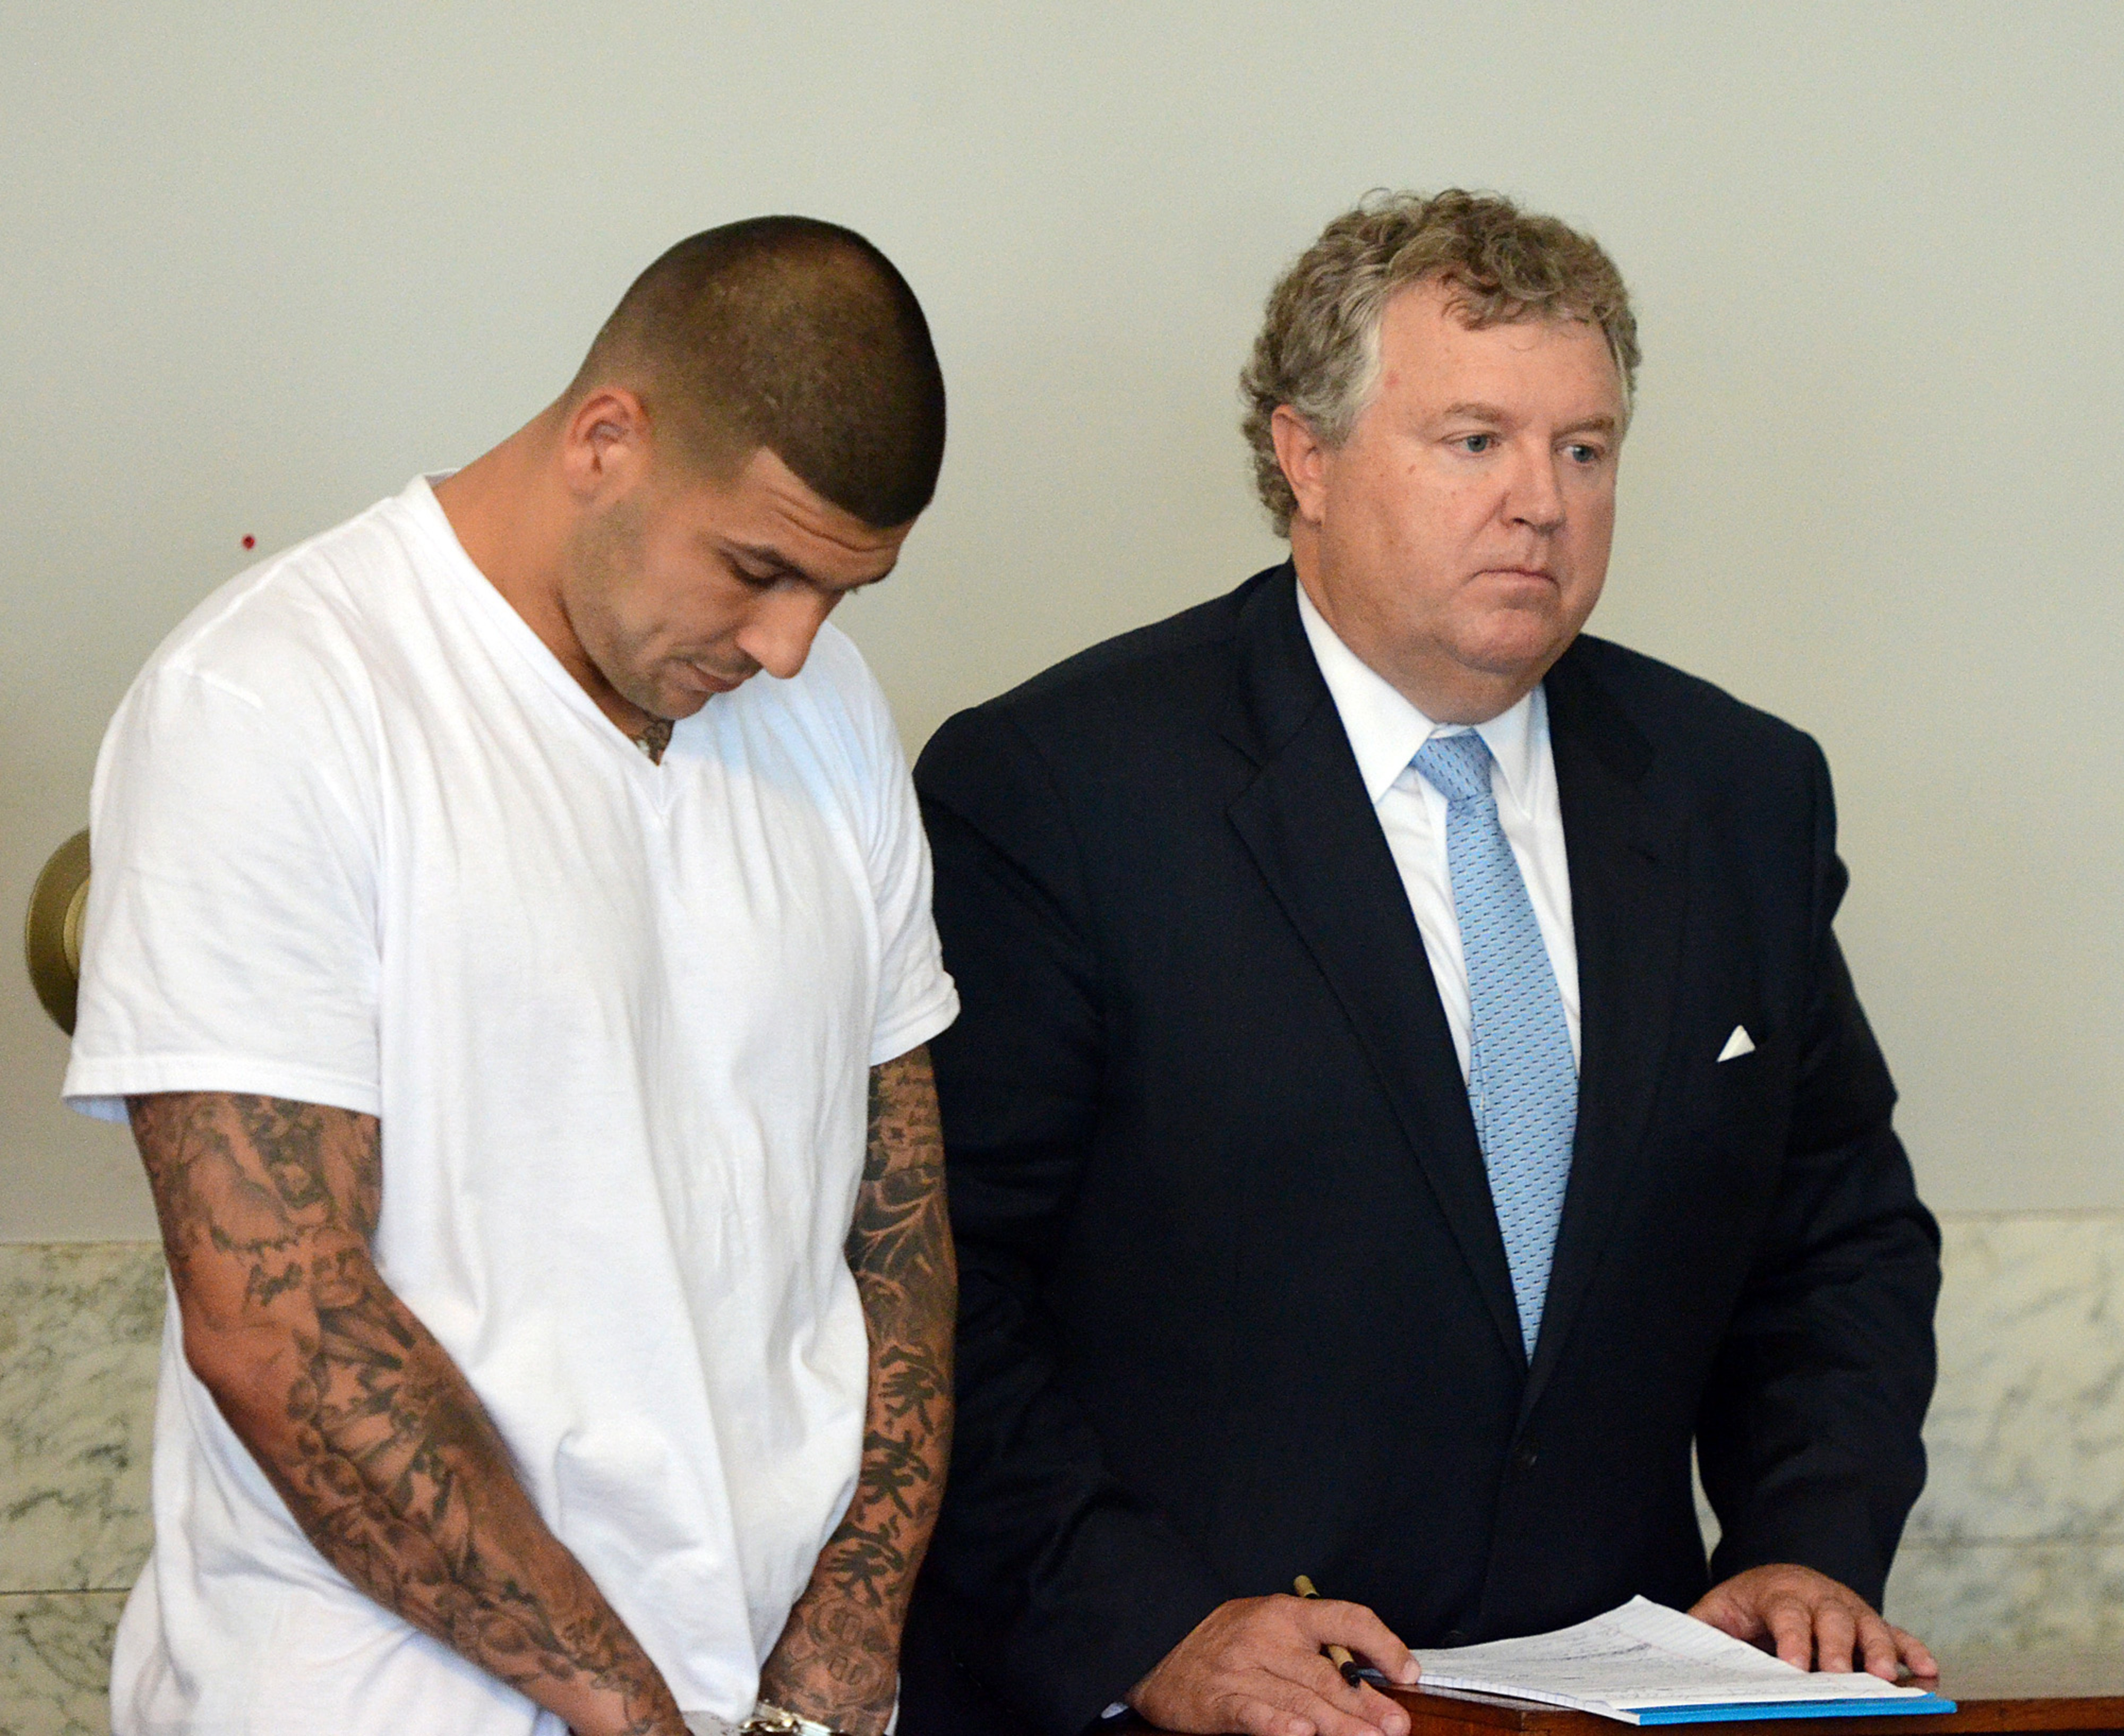 Aaron Hernandez told associate he shot Odin Lloyd, per court documents